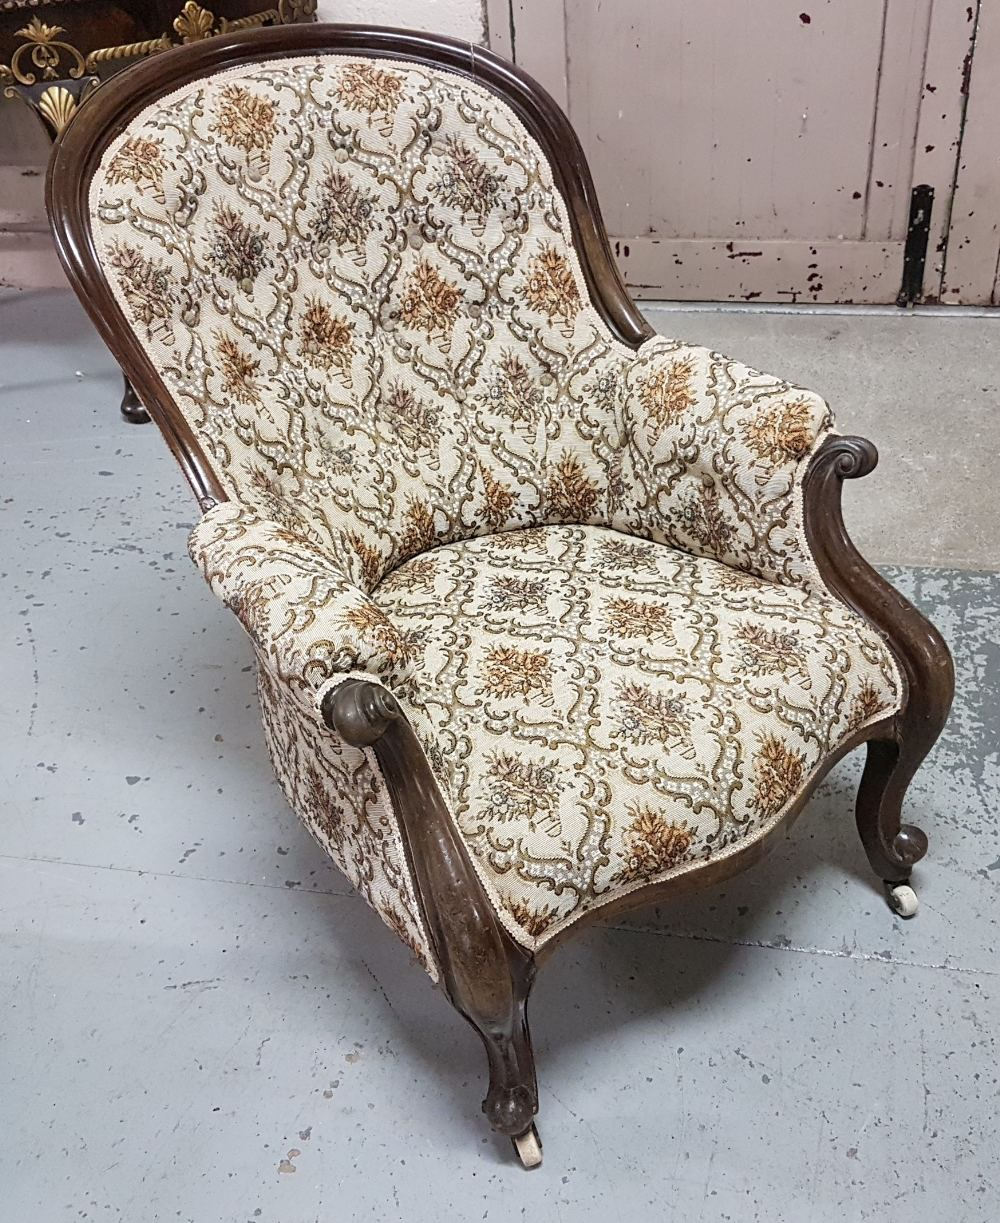 Lot 3 - Victorian Mahogany Framed Cabriole Leg Armchair, brown floral fabric